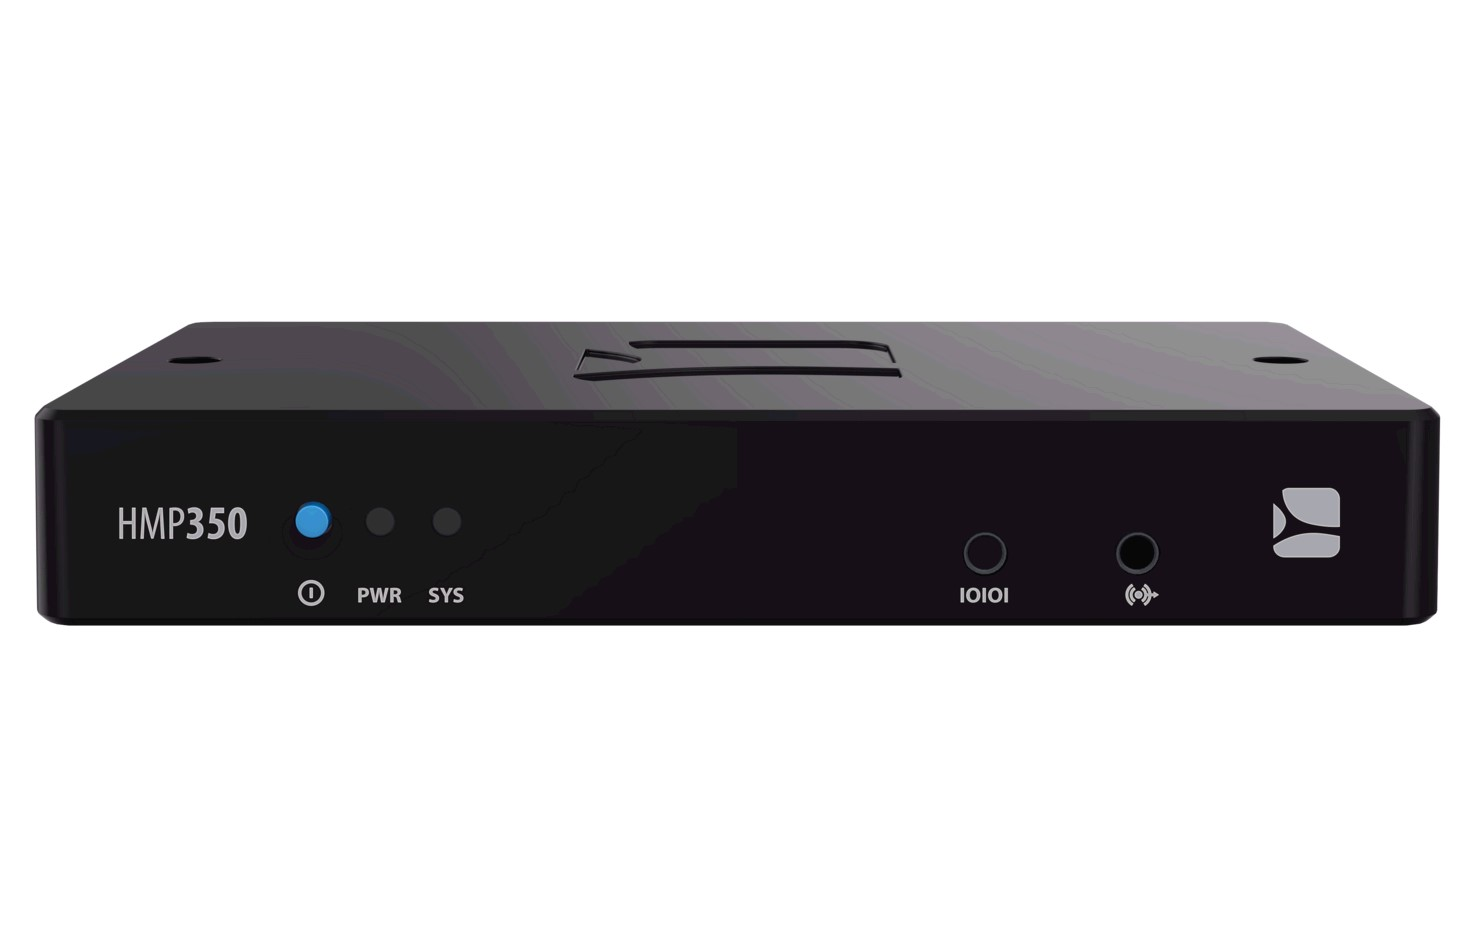 Artikelfoto 1 SpinetiX Hyper Media Player HMP350 - Digital Signage Player